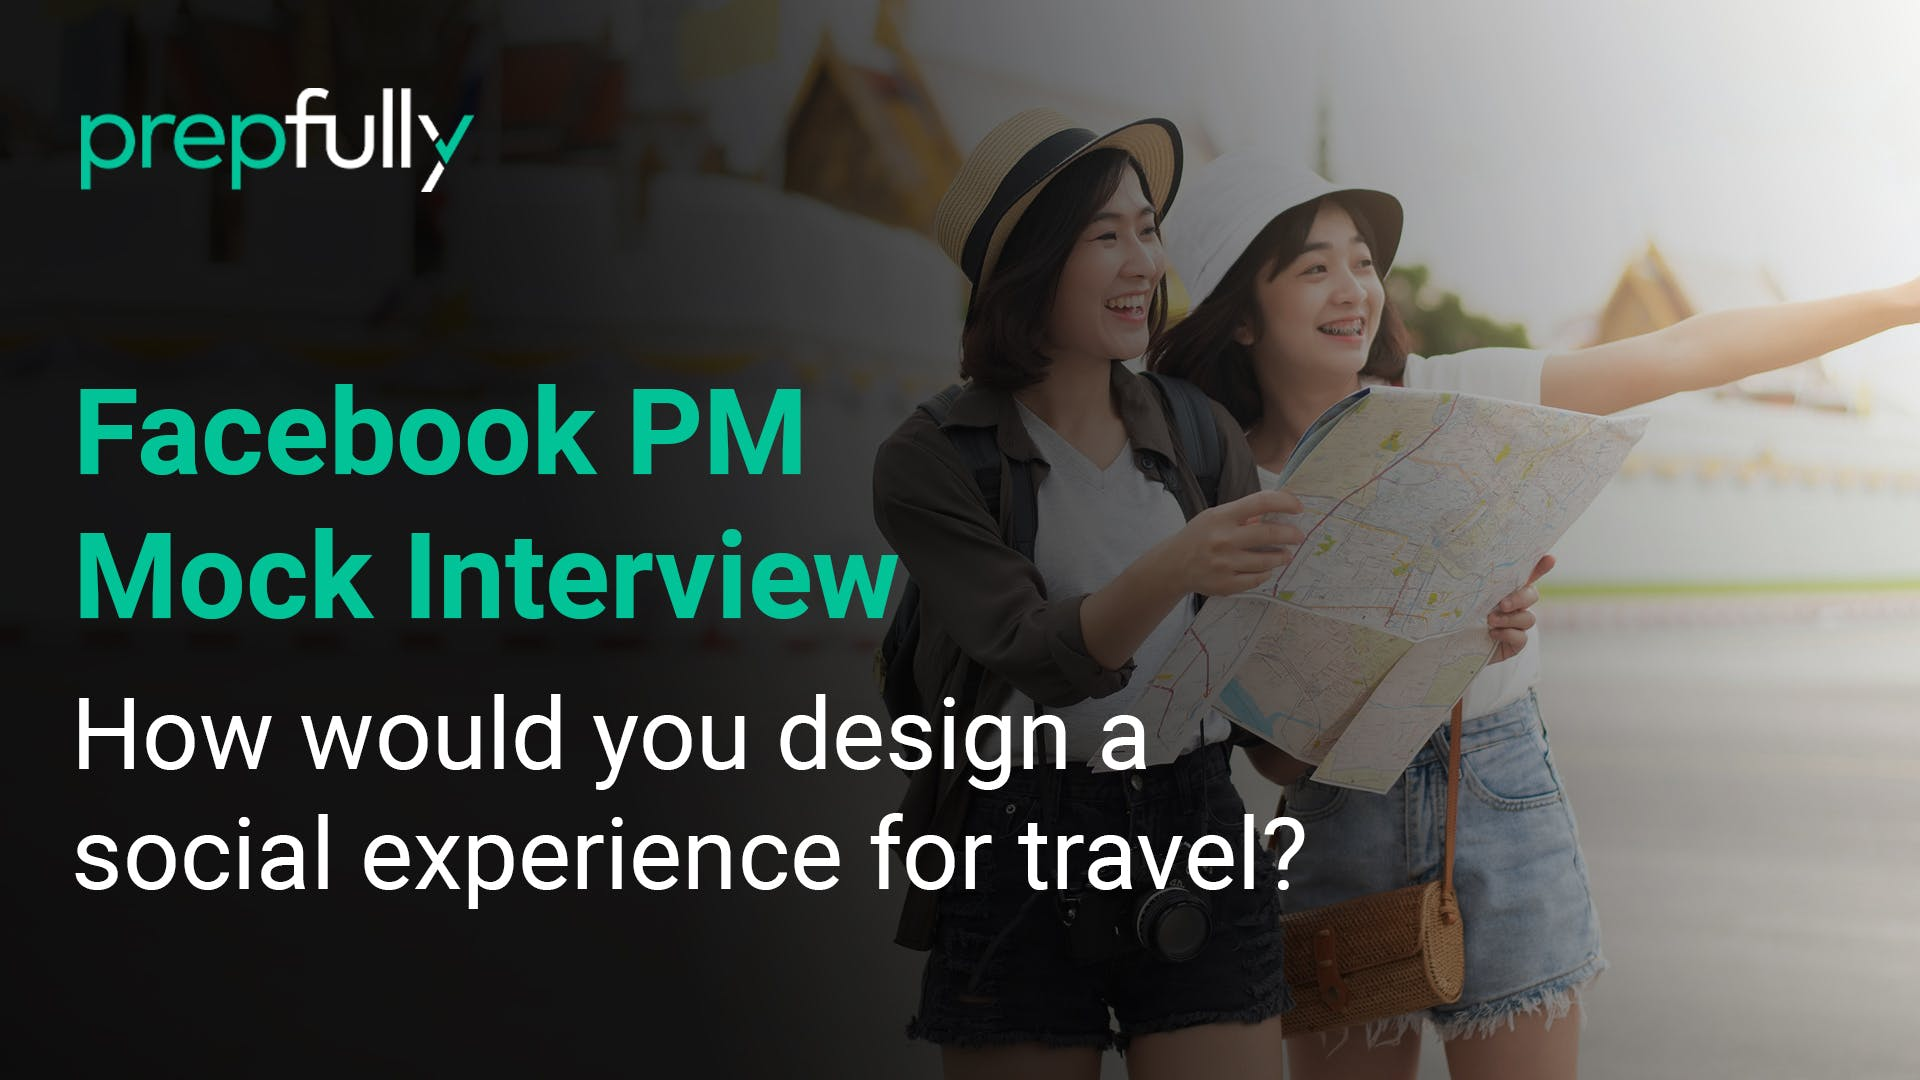 Facebook-PM-Interview-How-would-you-design-a-social-experience-for-travel.